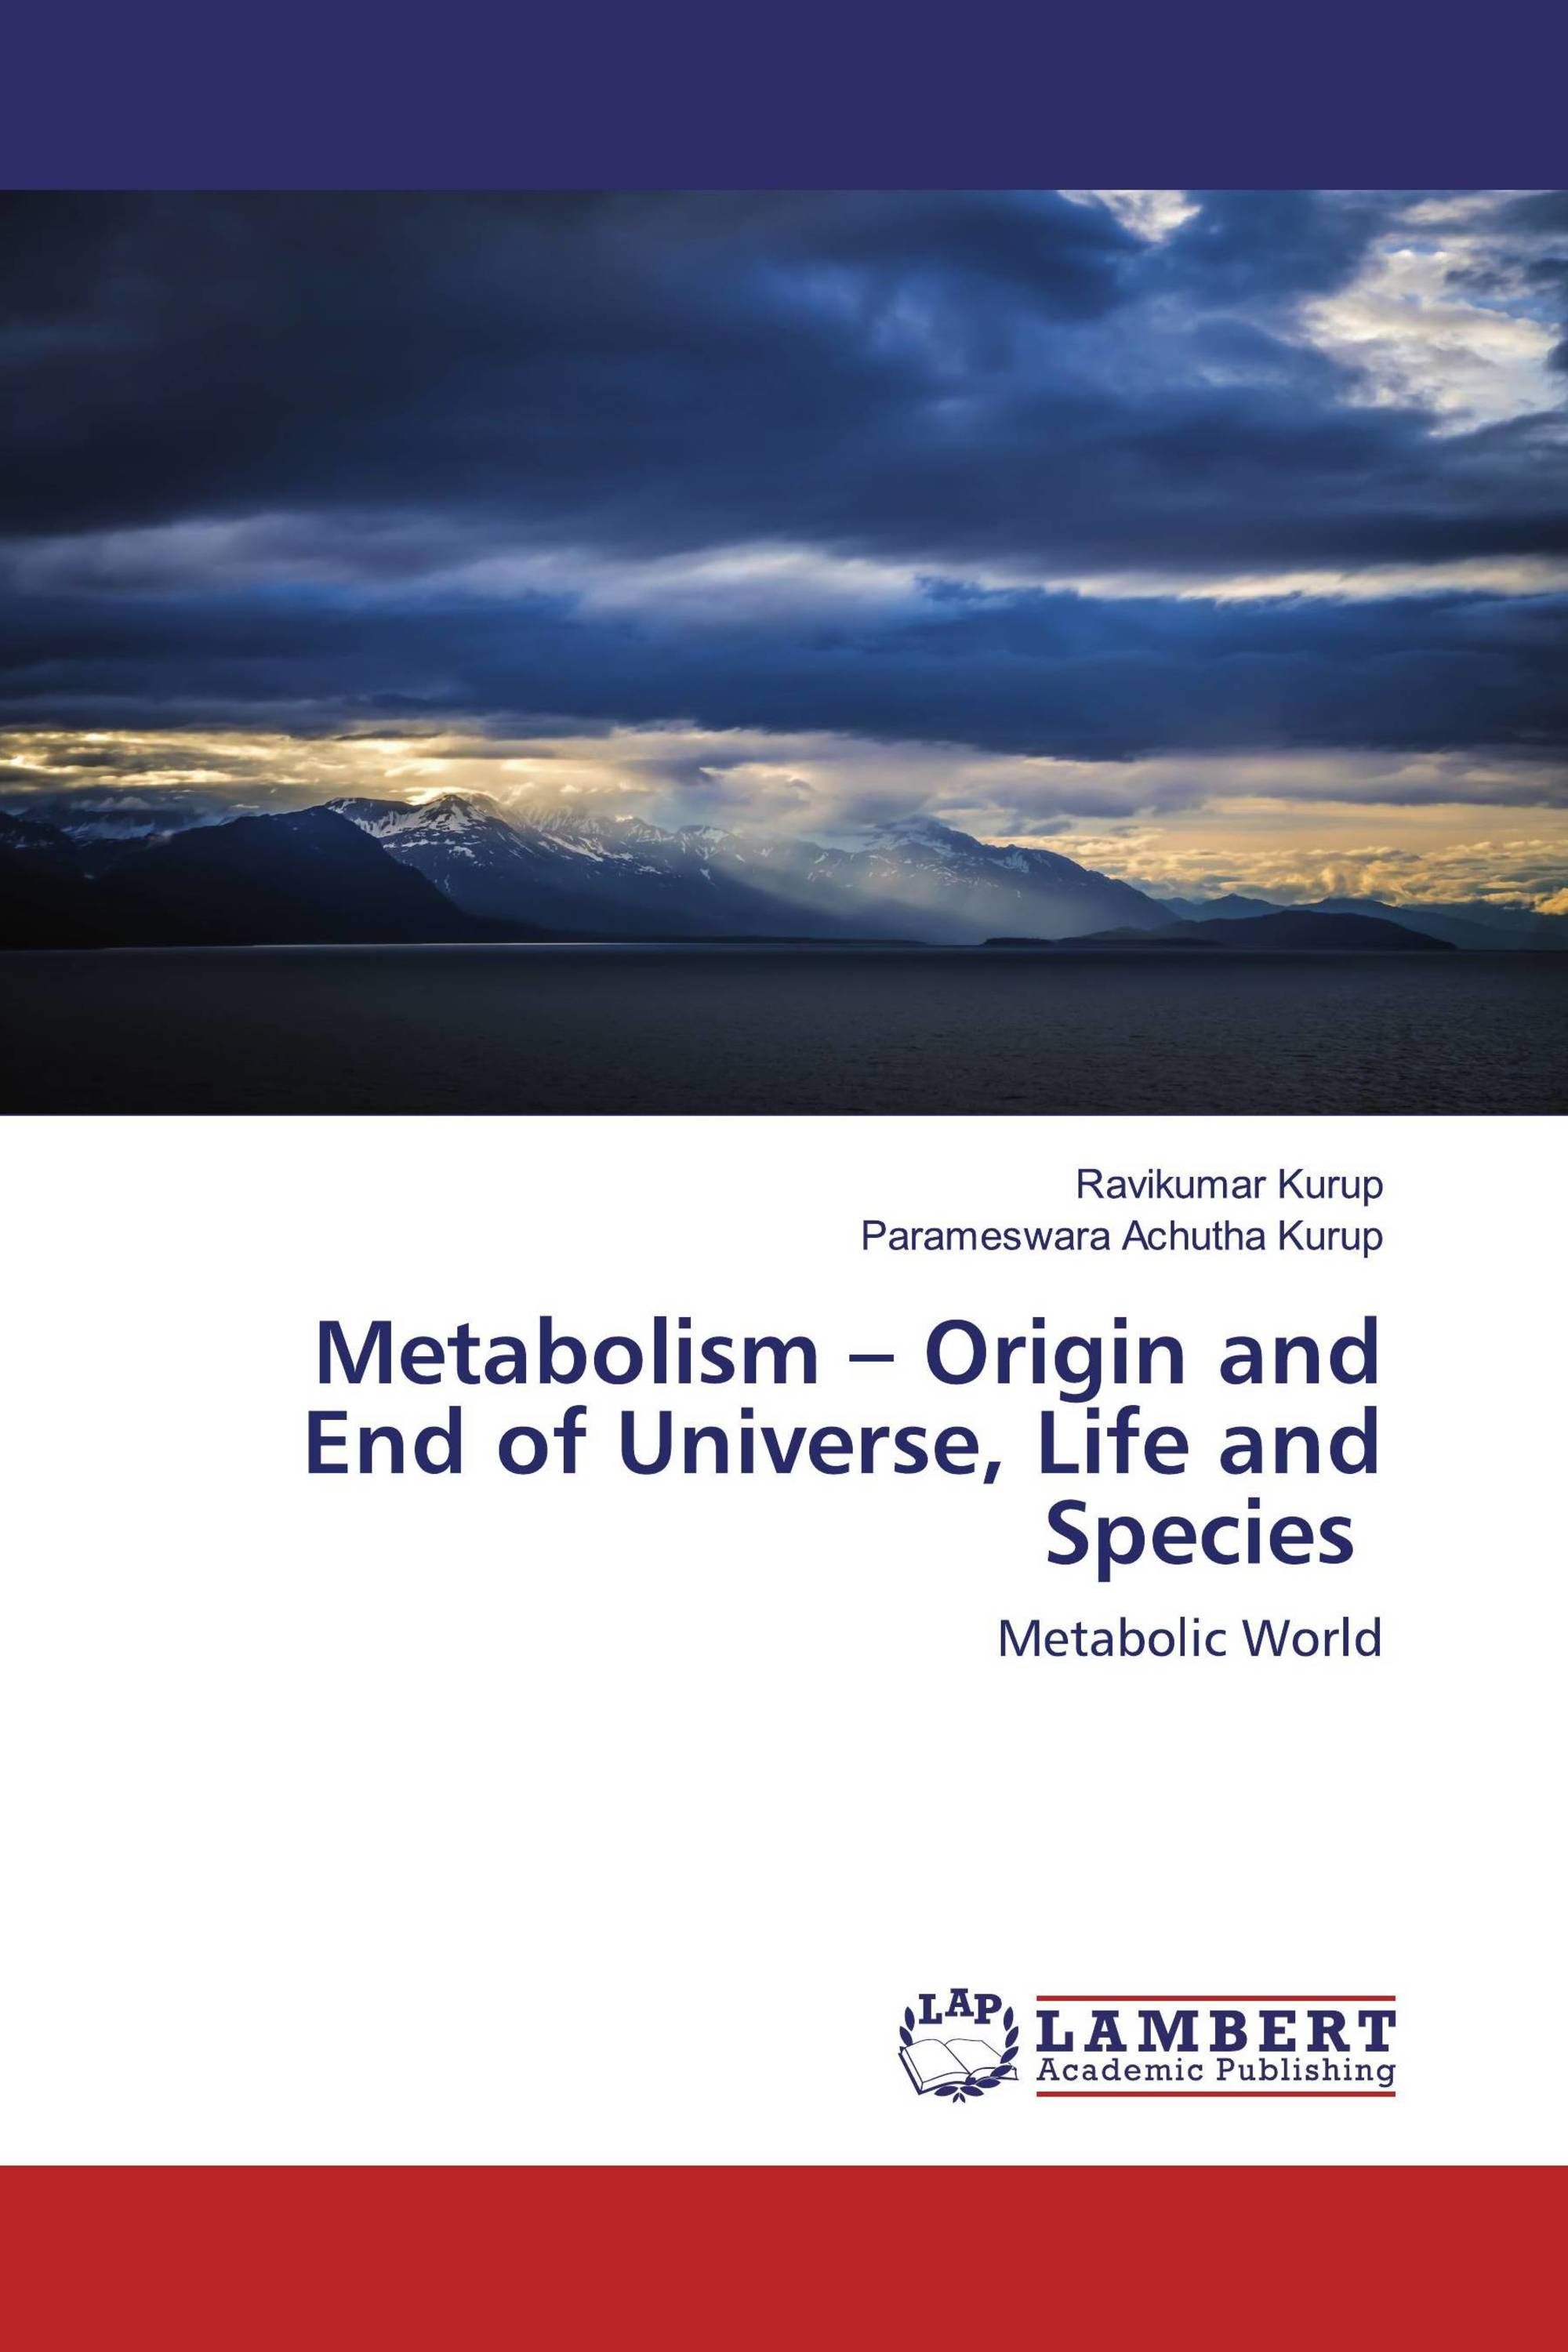 Metabolism – Origin and End of Universe, Life and Species